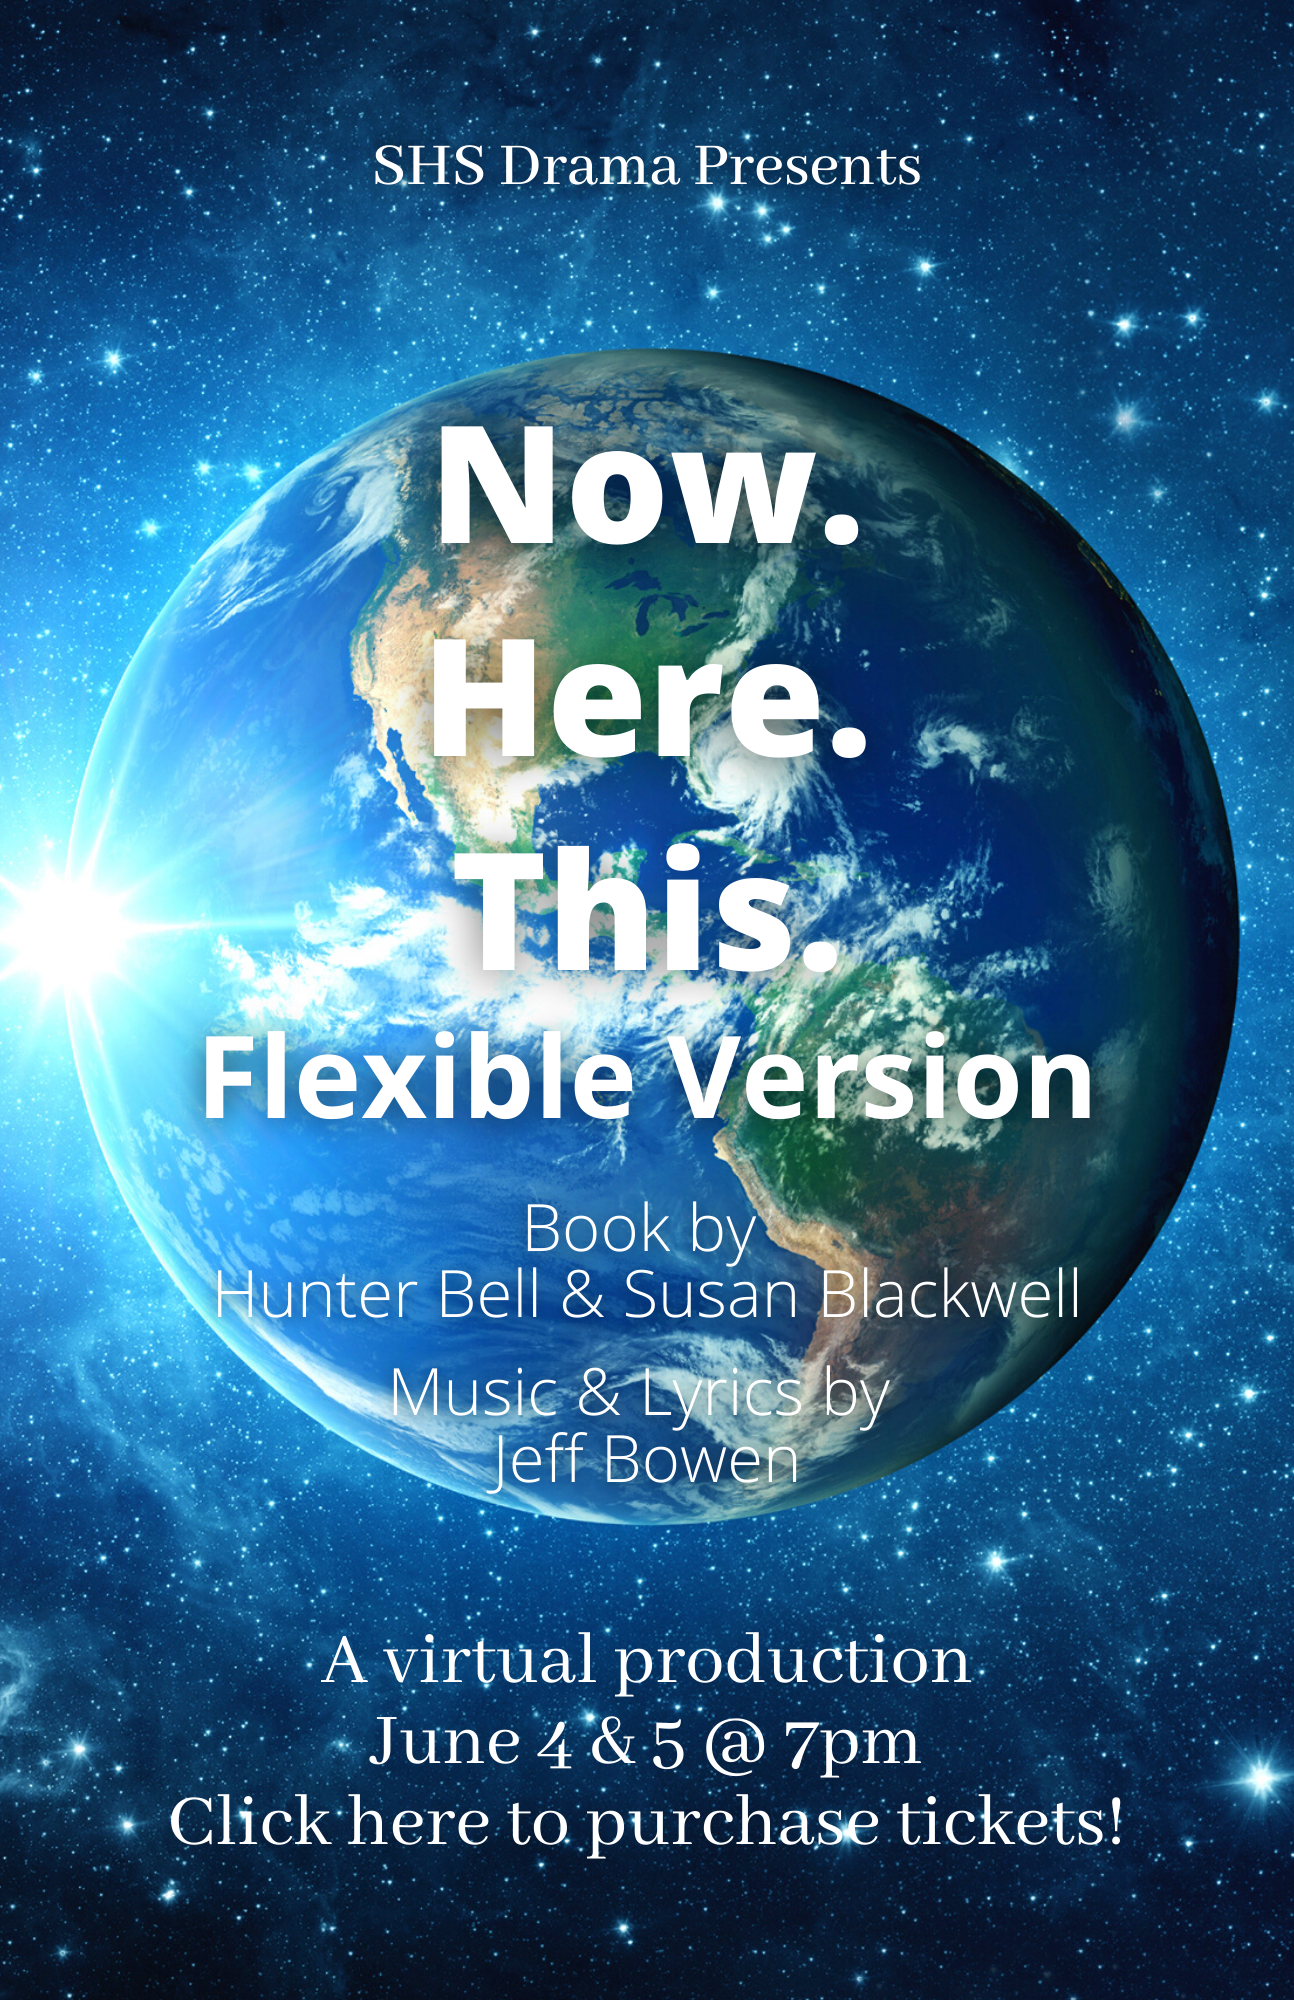 Flyer for the Southbridge Middle High School Drama Department presentation of Now. Here. This. Flexible Version